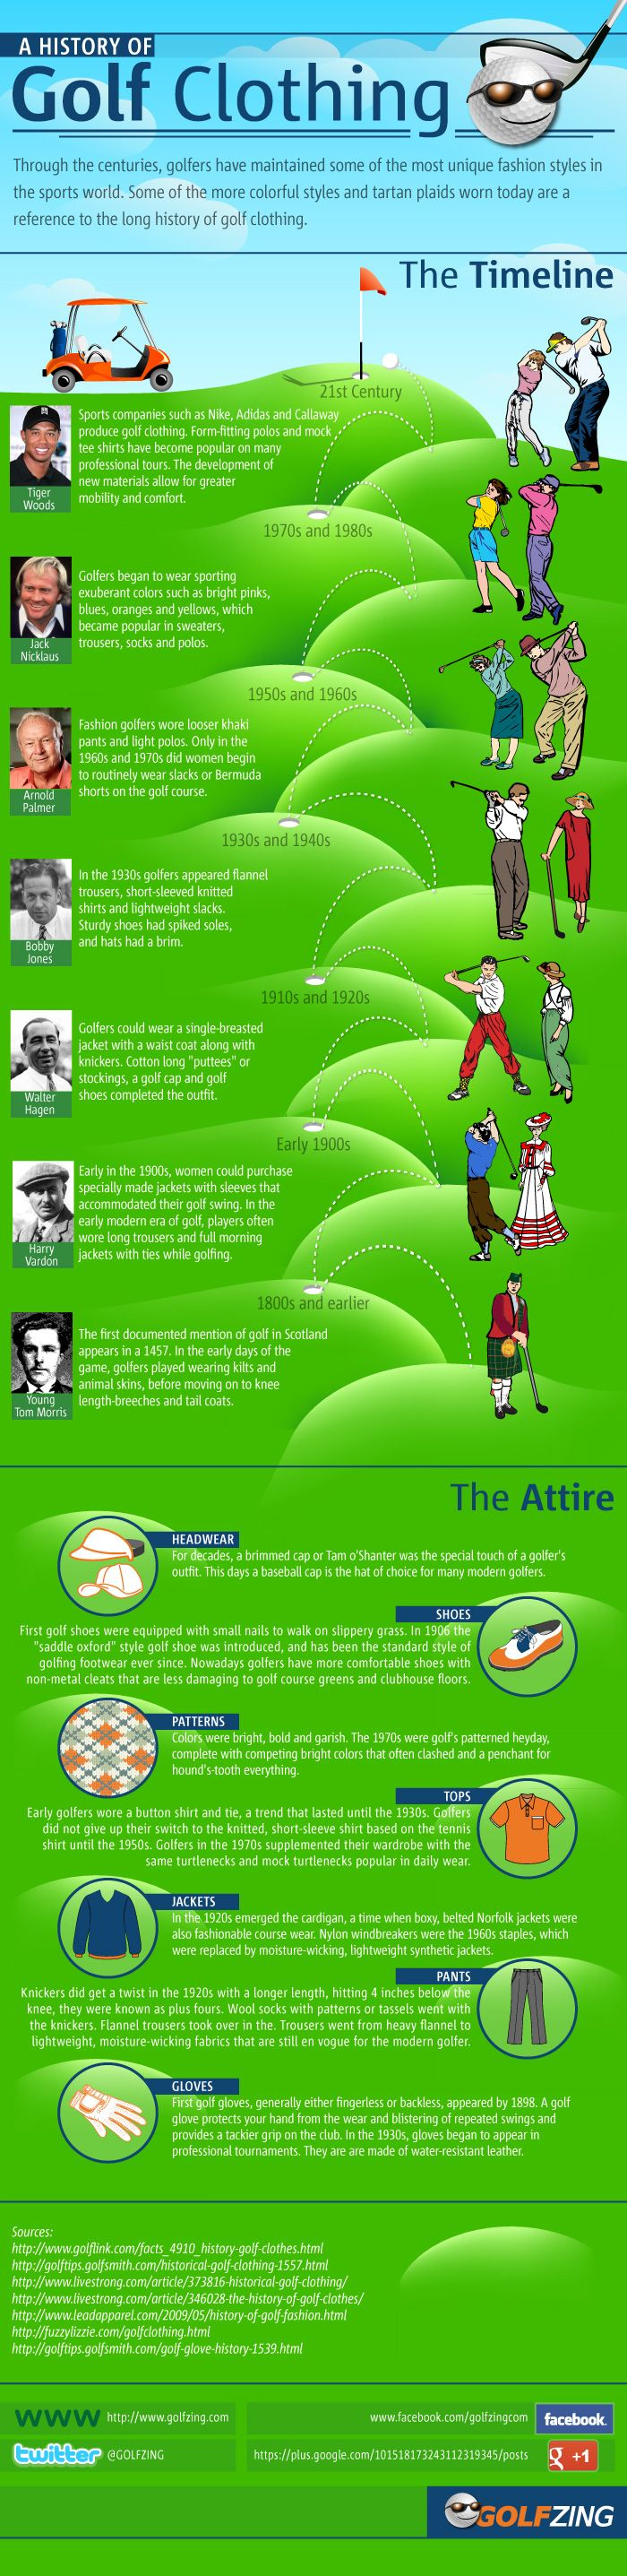 25+ best ideas about Golf clothing on Pinterest